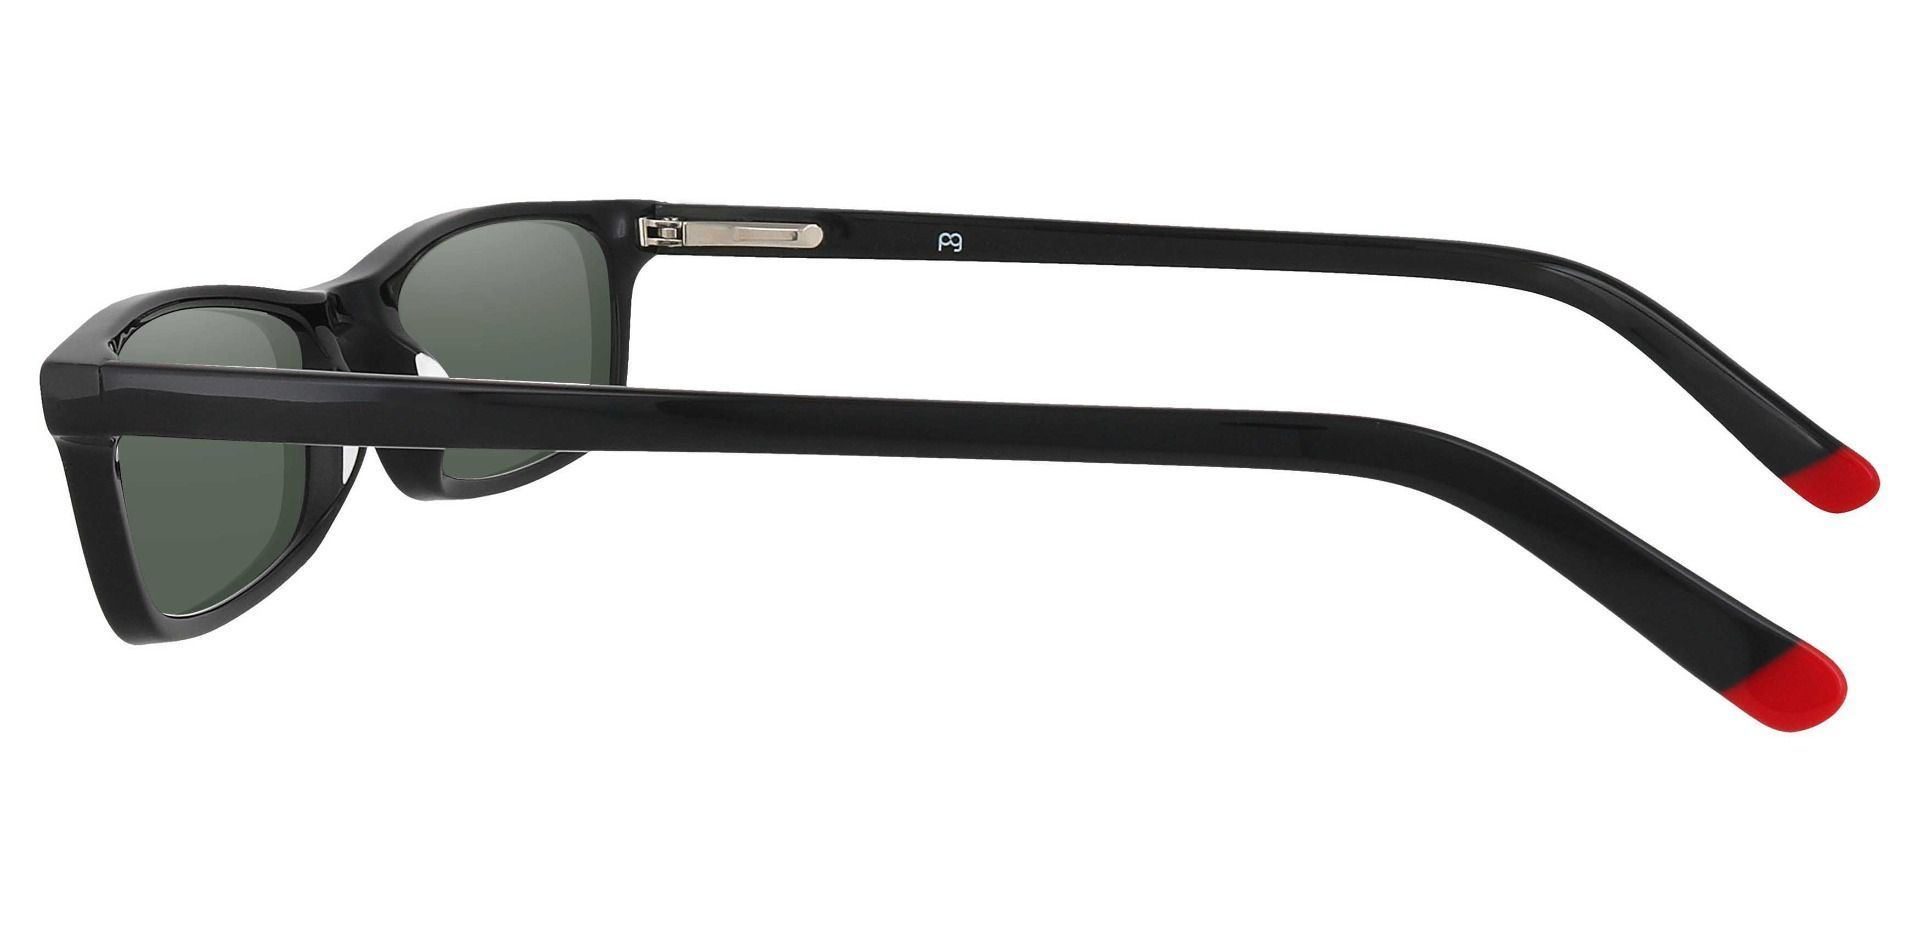 Palisades Rectangle Non-Rx Sunglasses - Black Frame With Green Lenses